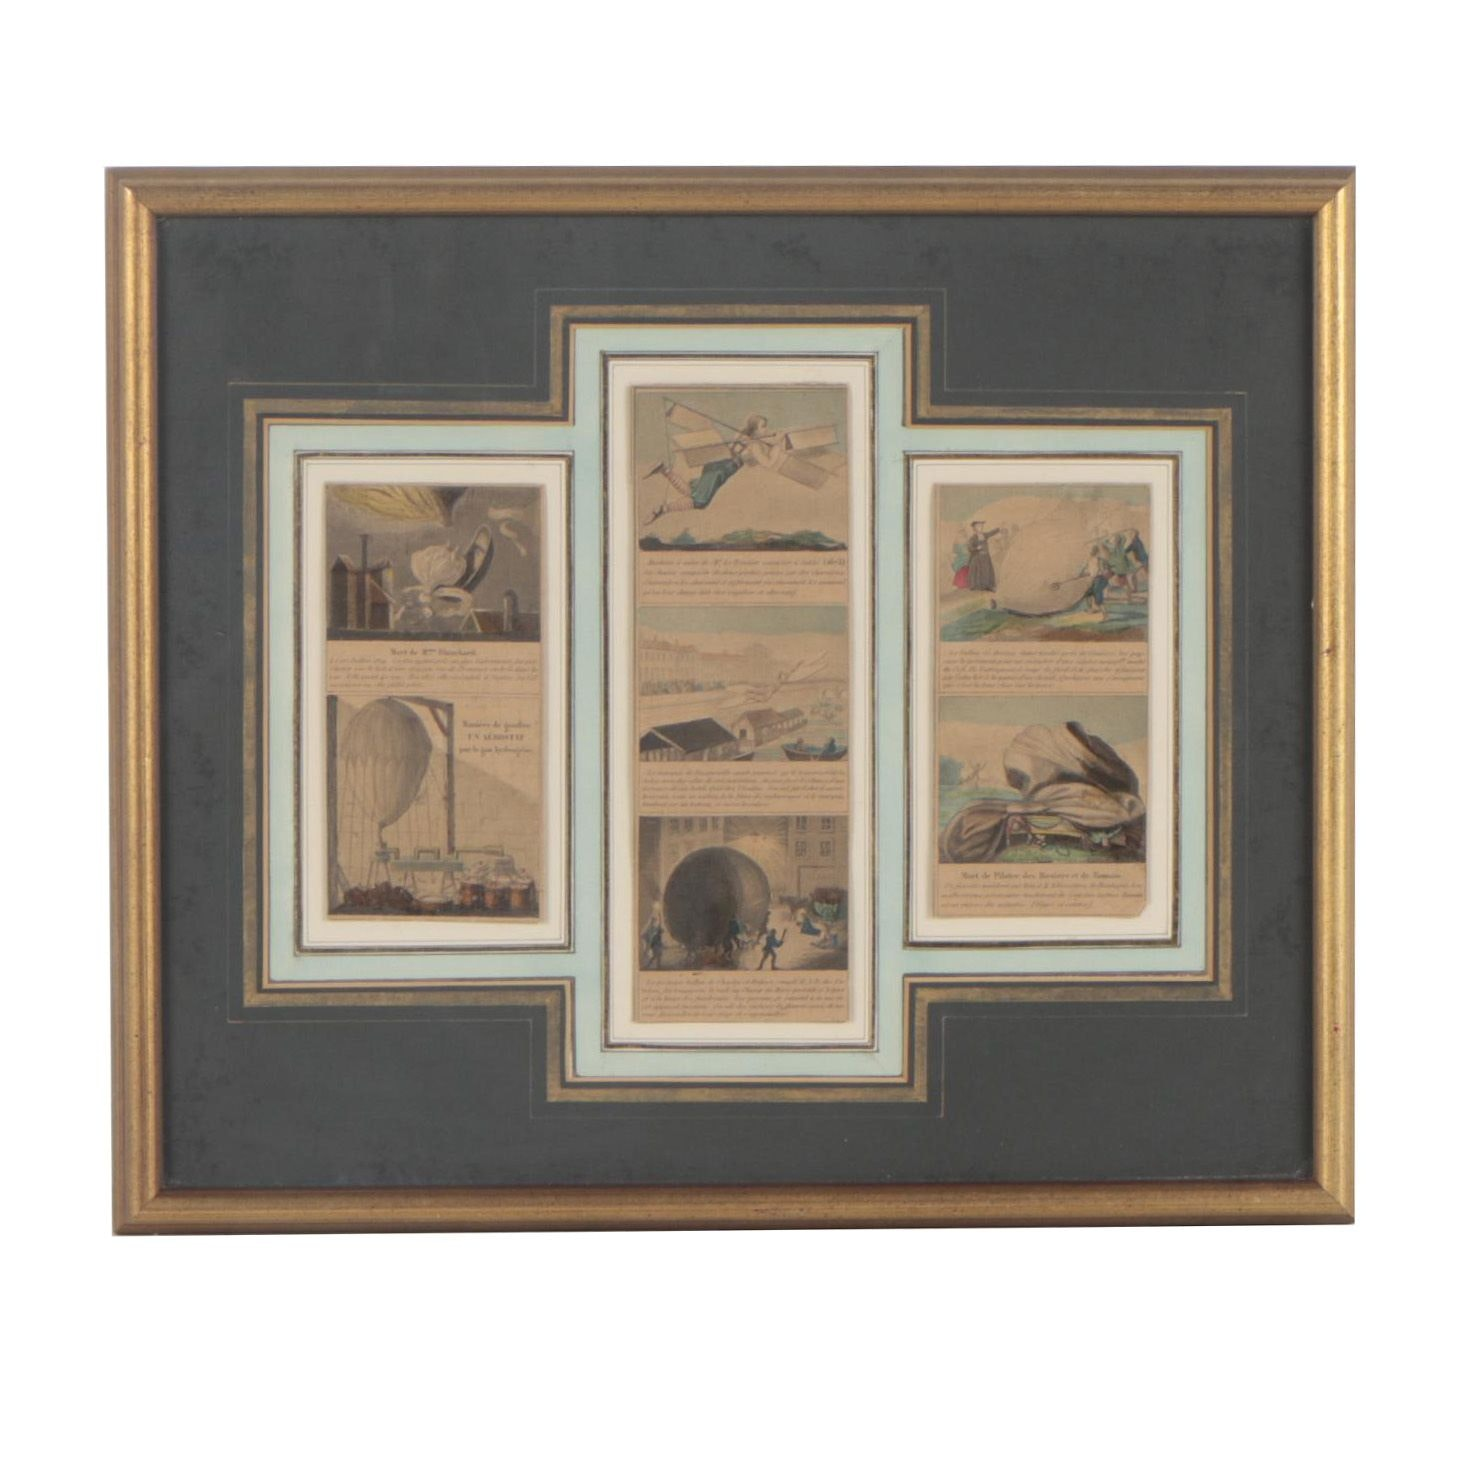 Hand-Colored Lithographs